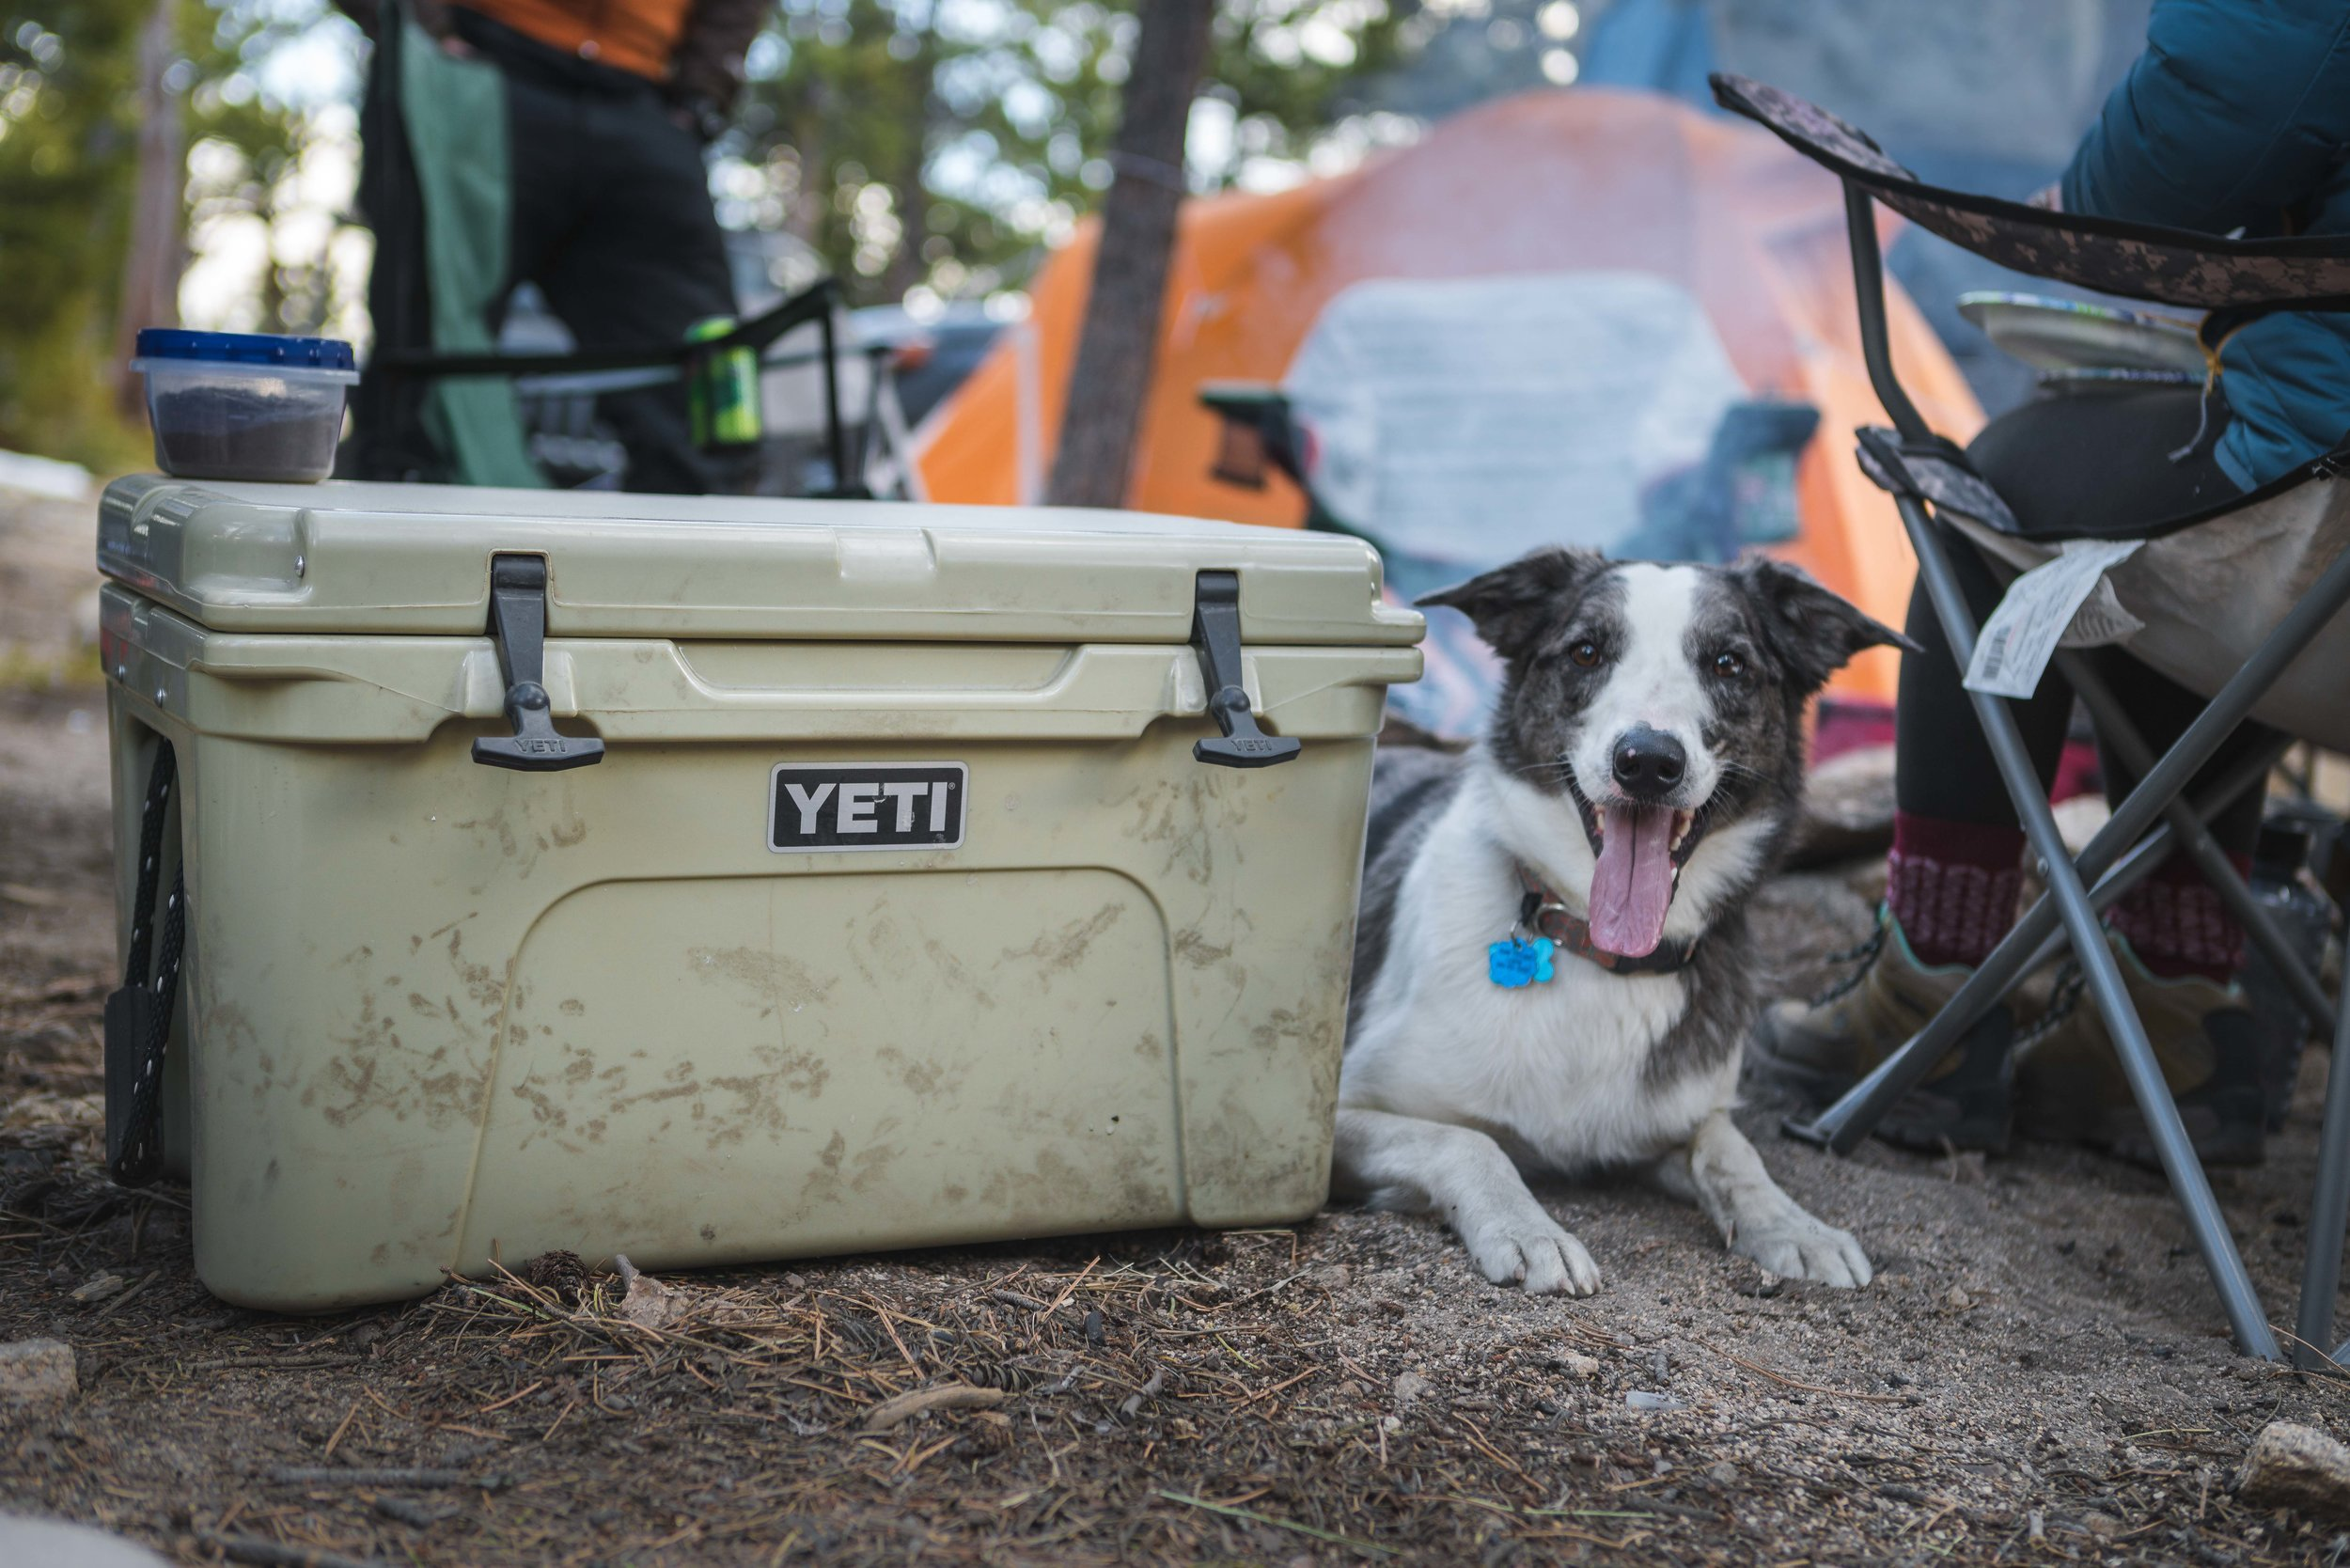 Yeti Cooler - The price of vacation usually falls two three major components: Accommodations, travel, and food. Our 4Runner will fuel our travels and paired up with a Tepui tent, will serve as our hotel also. Going to new places and discovering new culture is amazing and the best way to experience the culture is through food. Food says a lot about the community and the population in the area. Unfortunately we can't eat out every single meal, especially while we are on the road, as it gets rather expensive.To minimize food cost and keep us fed in deserted mountains of Alaska, we decided to buy ourselves a Yeti Cooler. It has been our refrigerator during our travels and serves us fresh meals when there are no stores in sight. Put a block of ice in there and it'll keep your food frozen for more than a week and a half! We've kept milk, eggs, meat and our cold drinks without having to worry about any of it spoiling. It's very spacious in the inside and well built, able to keep weary bears out of our food. Price is a little high but it is worth every penny that was put into it.